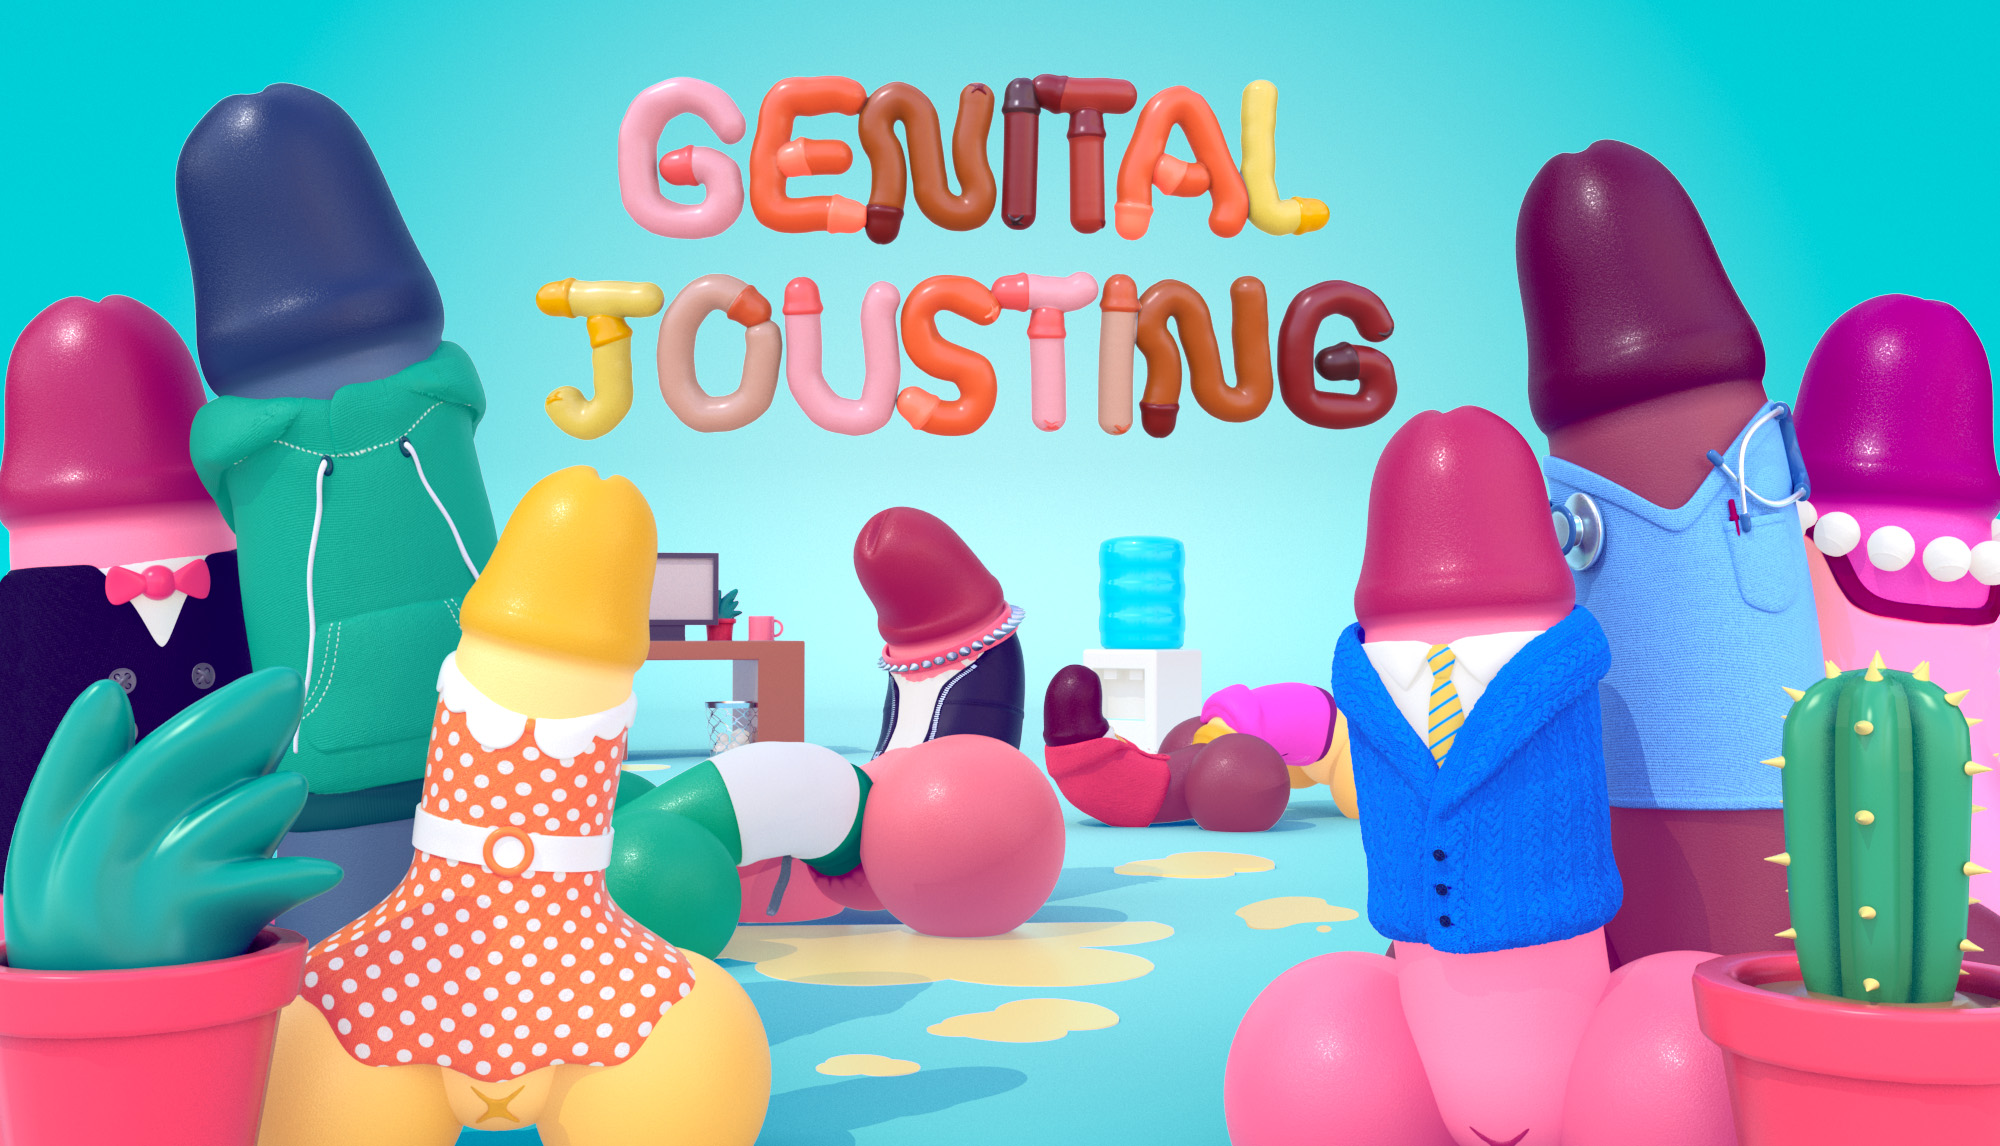 Several bright coloured penises in dresses, suits, and hoodies stand beneath the game title.